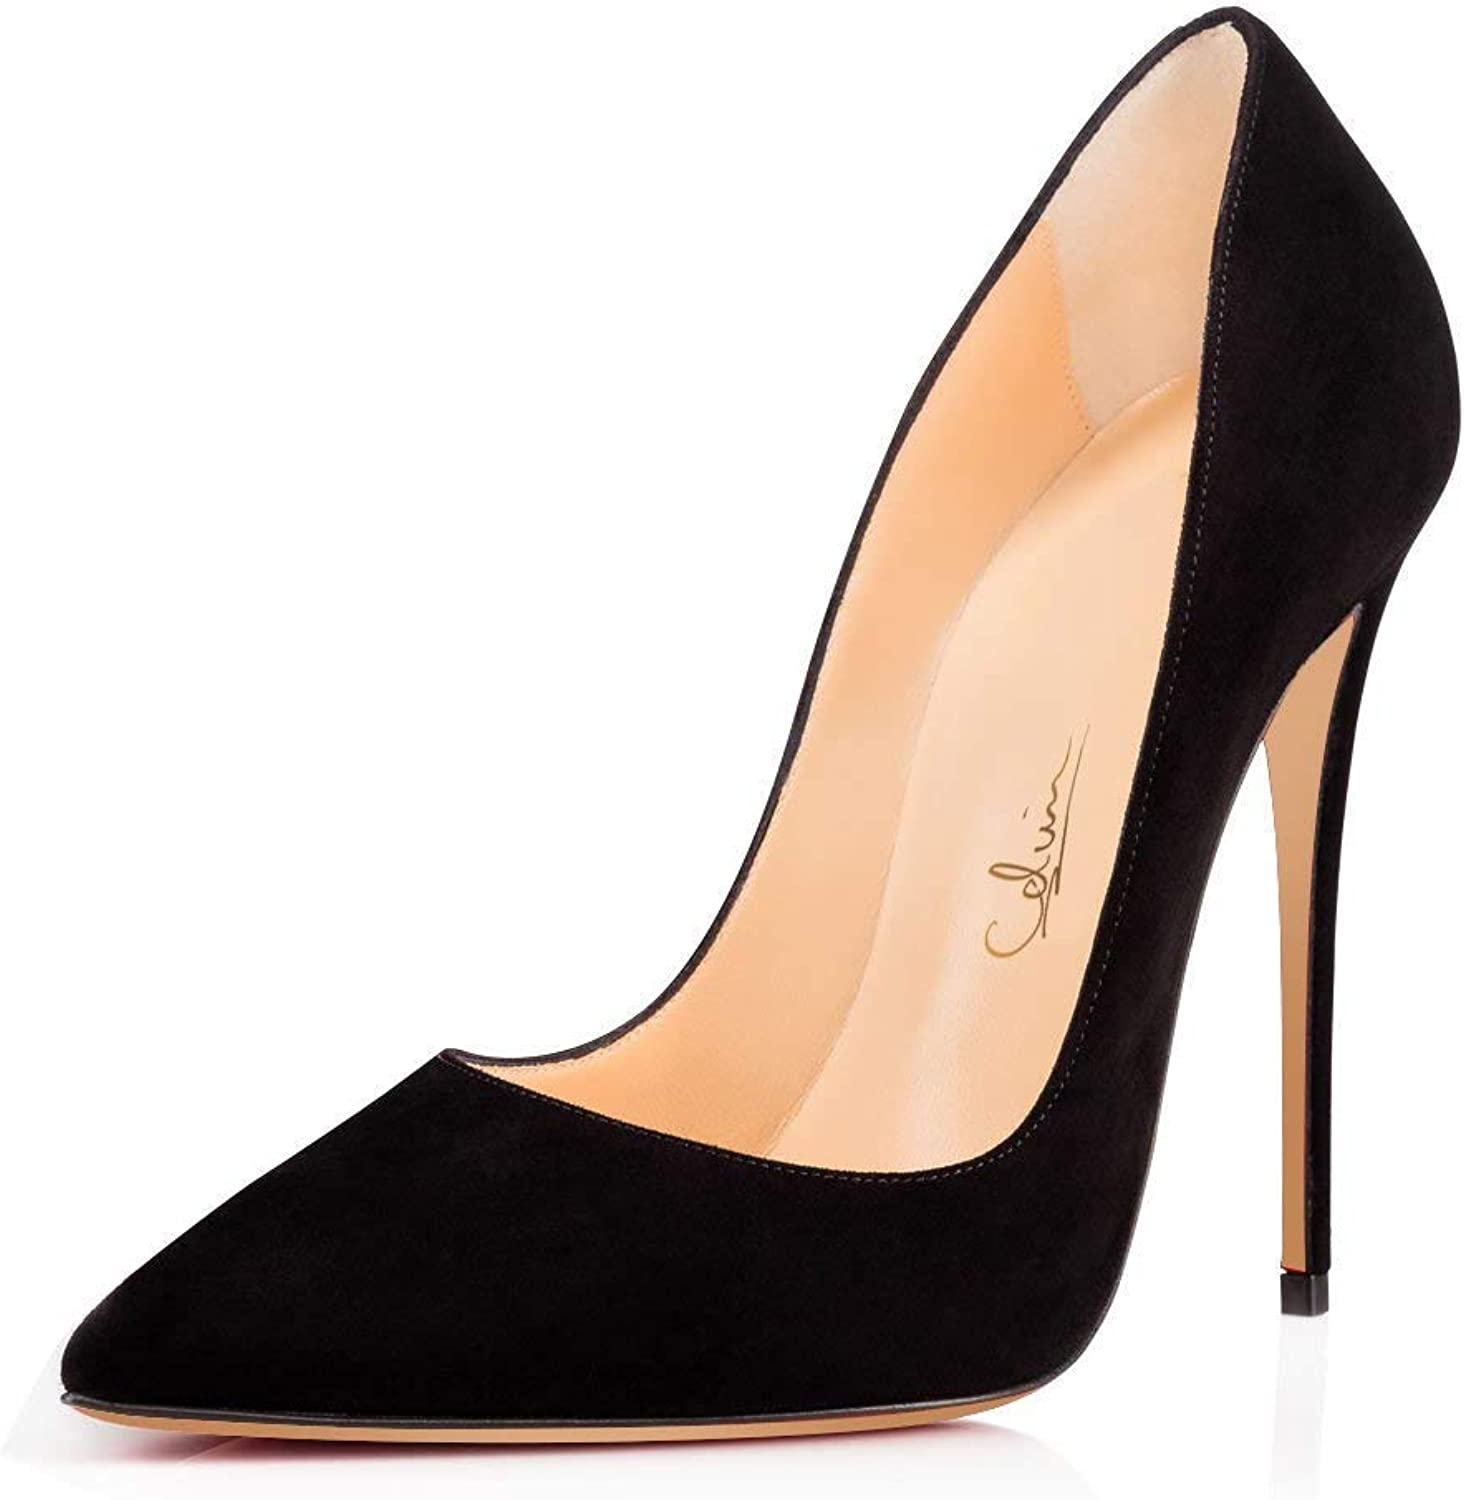 UMEXI 4.75  Pointed Toe High Heels Slip On Stilettos Wedding Party Pumps Dress shoes (11, Black Suede)